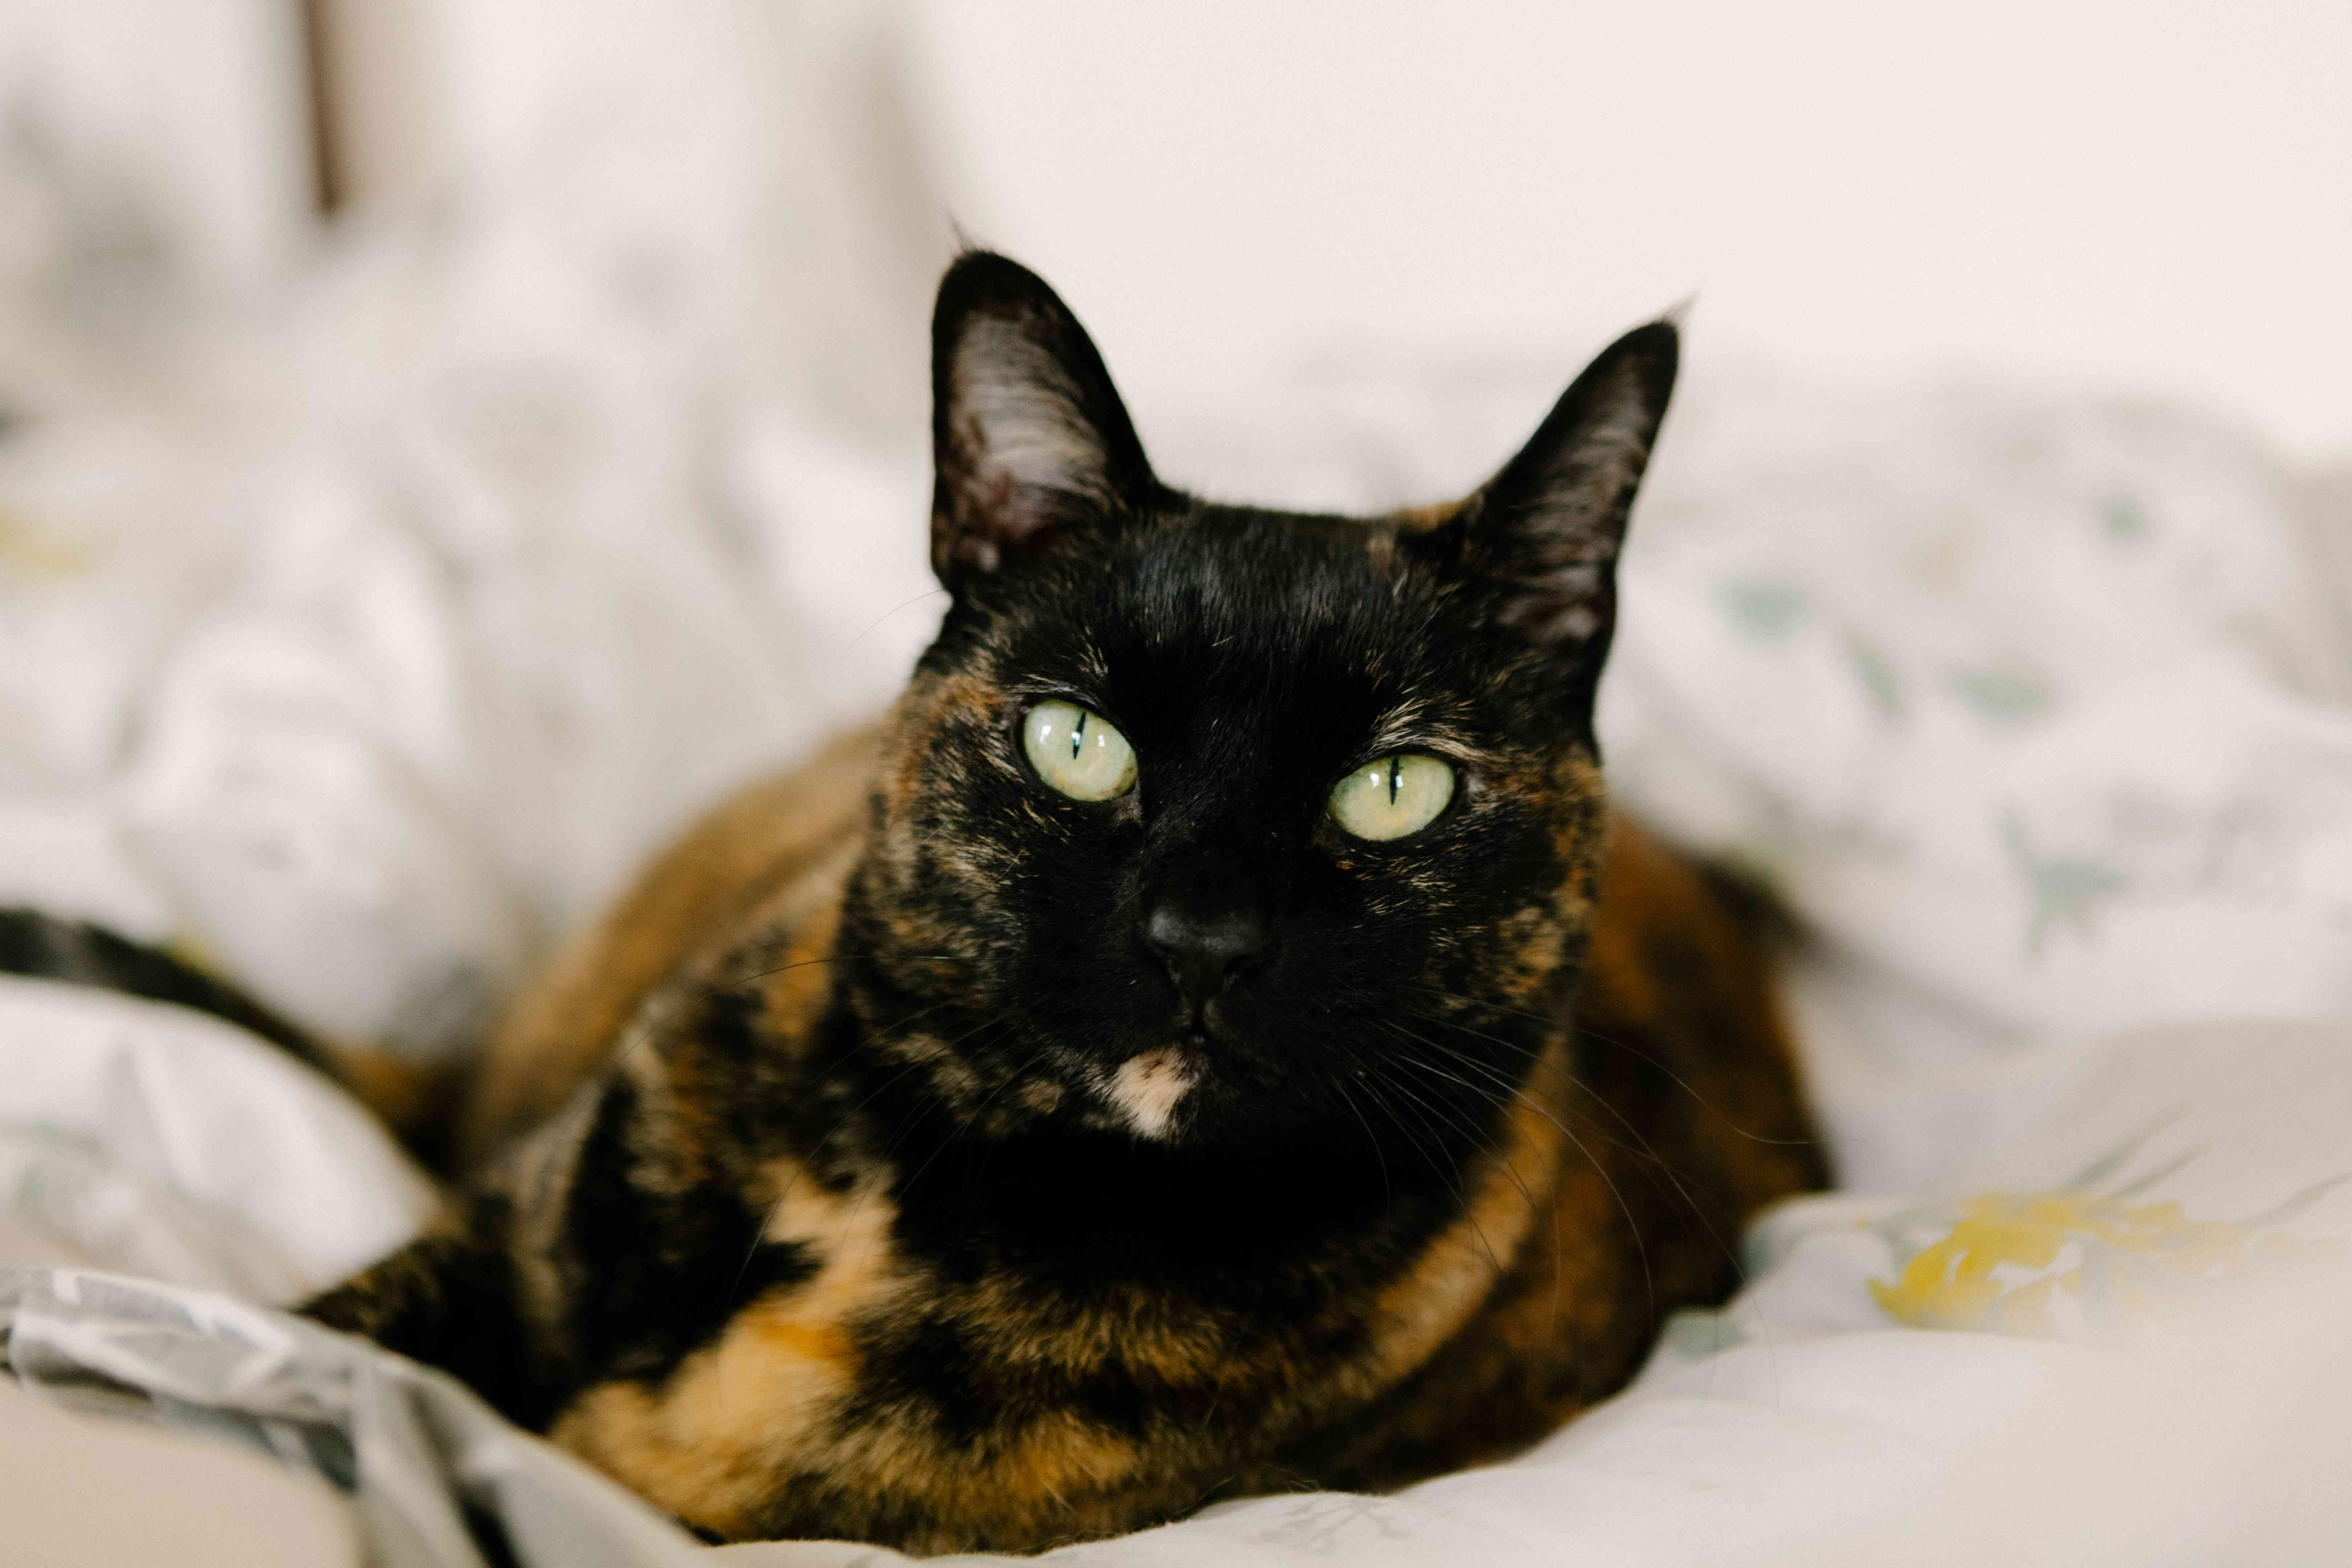 tortoiseshell cat with green eyes stares intently while sitting on white blanket